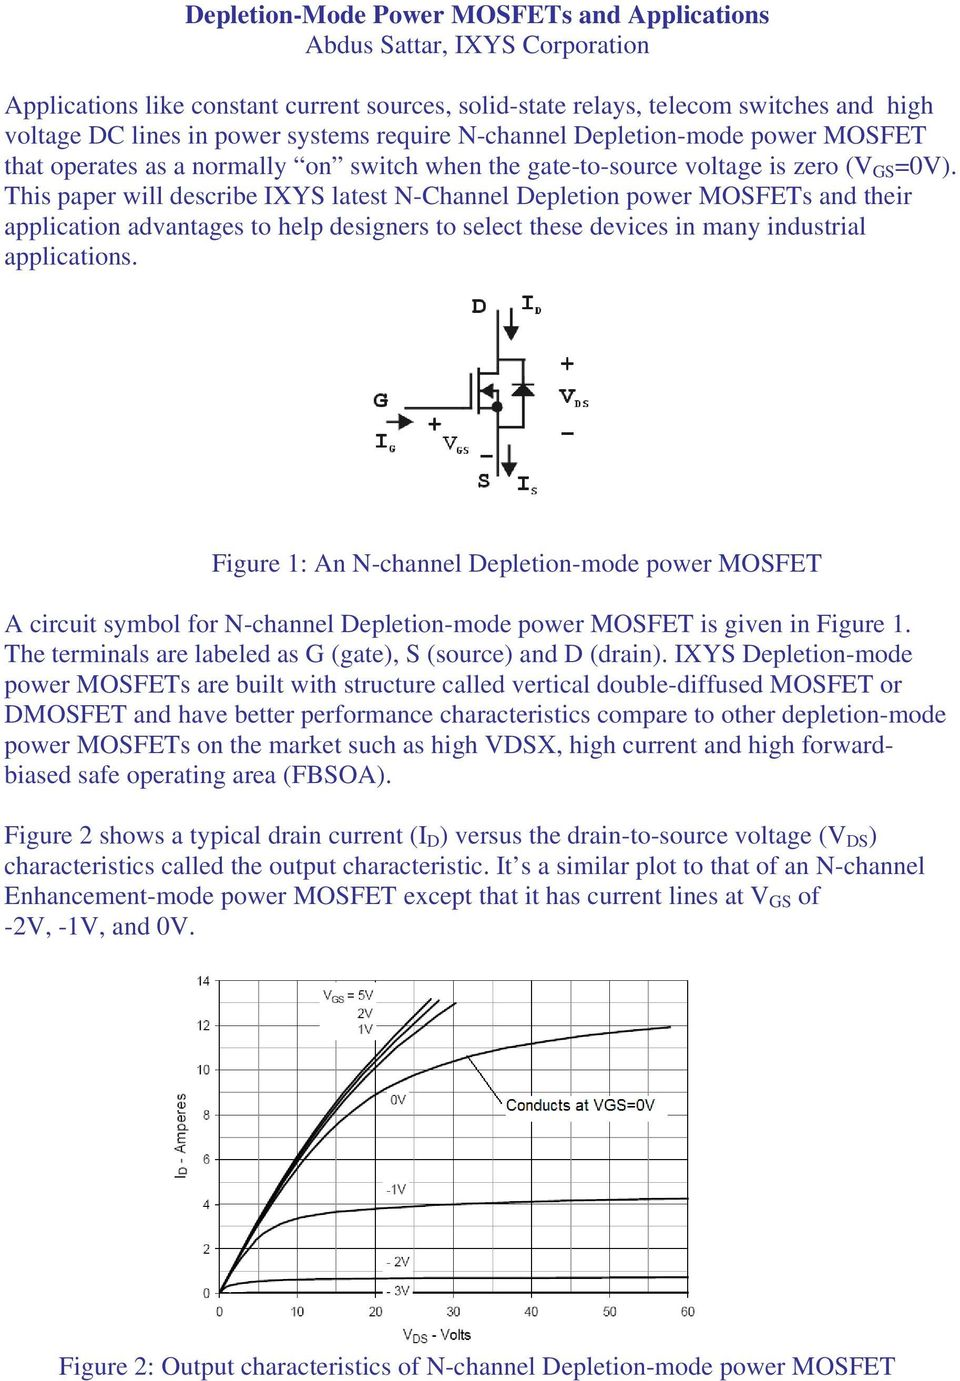 Depletion Mode Power Mosfets And Applications Abdus Sattar Ixys Constant Current Source Circuit This Paper Will Describe Xys Latest N Channel Epletion Their Application Advantages